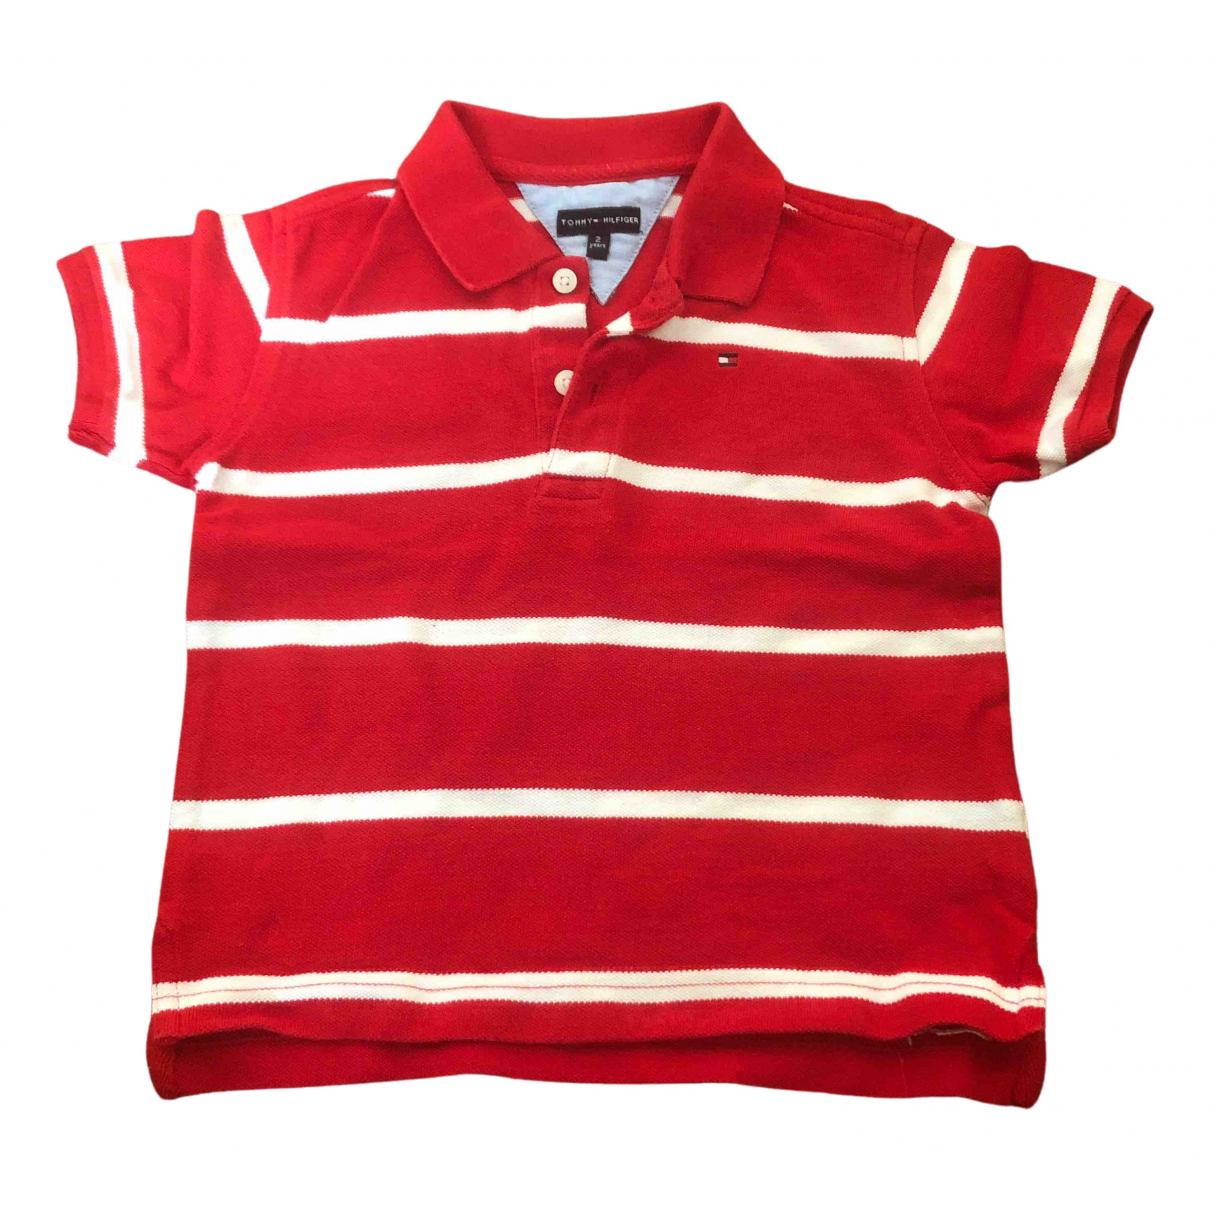 Tommy Hilfiger N Red Cotton  top for Kids 2 years - up to 86cm FR